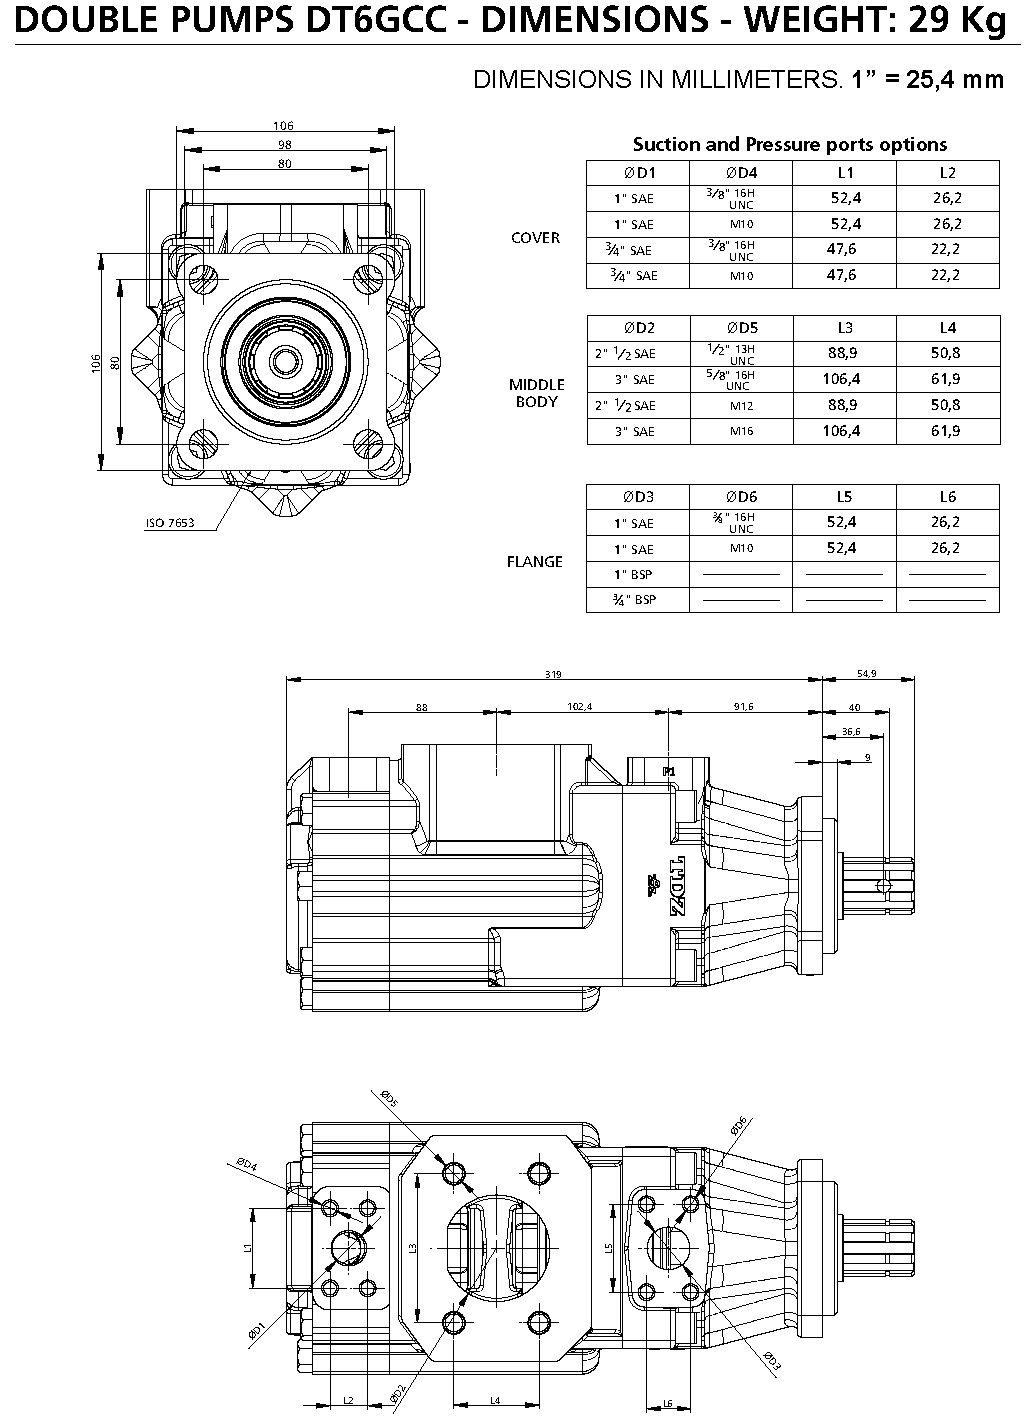 air operated diaphragm pump diagram, ball pump diagram, scroll pump diagram, submersible pump diagram, impeller pump diagram, case pump diagram, turbomolecular pump diagram, hamilton pump diagram, industrial pump diagram, filter pump diagram, liquid vacuum pump diagram, vortex pump diagram, hydraulic pump diagram, screw pump diagram, vane pumps how they work, two stage pump diagram, horizontal pump diagram, progressing cavity pump diagram, variable volume pump diagram, gerotor pump diagram, on vane pump diagram